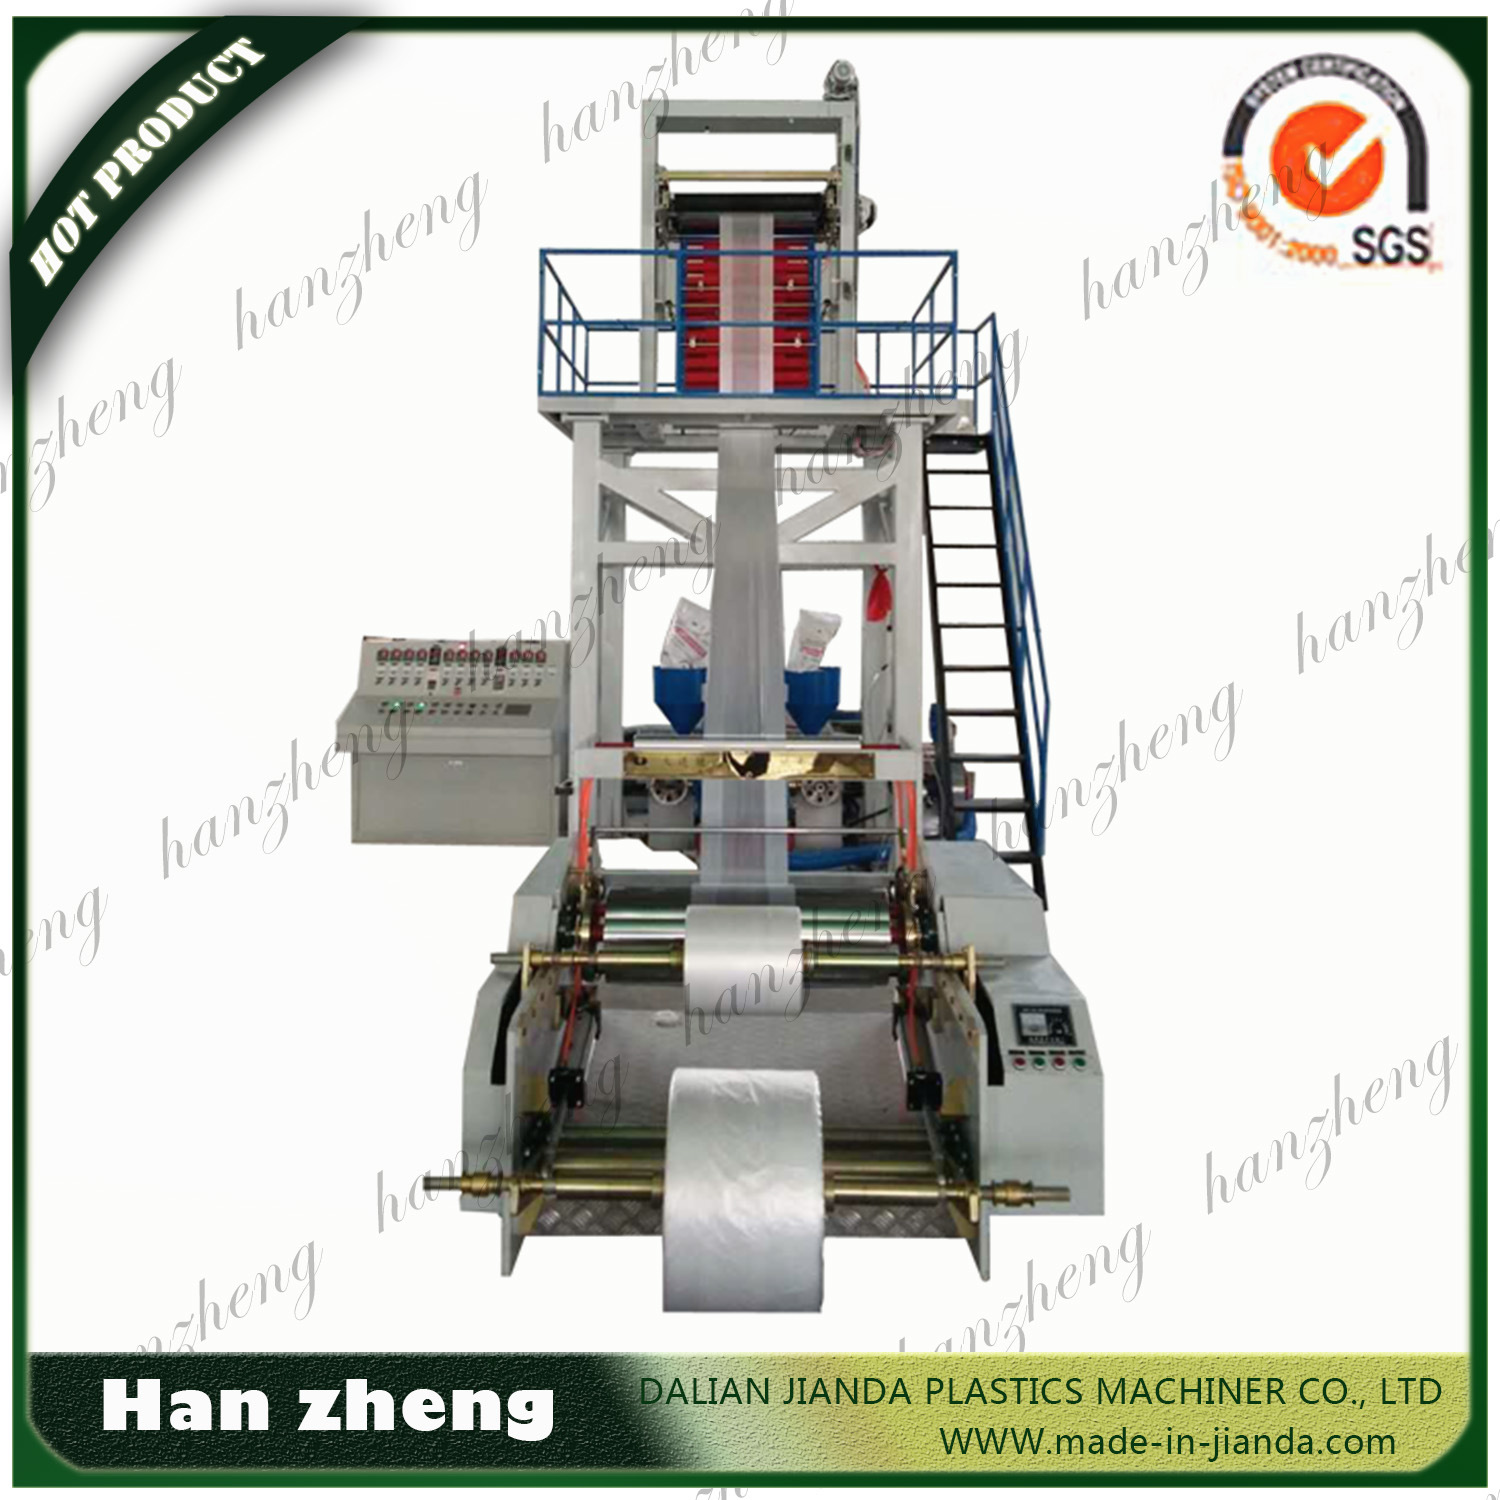 ABA Low Pressure Blown Film Machine for Shopping Bag Sjm-Z40-2-850